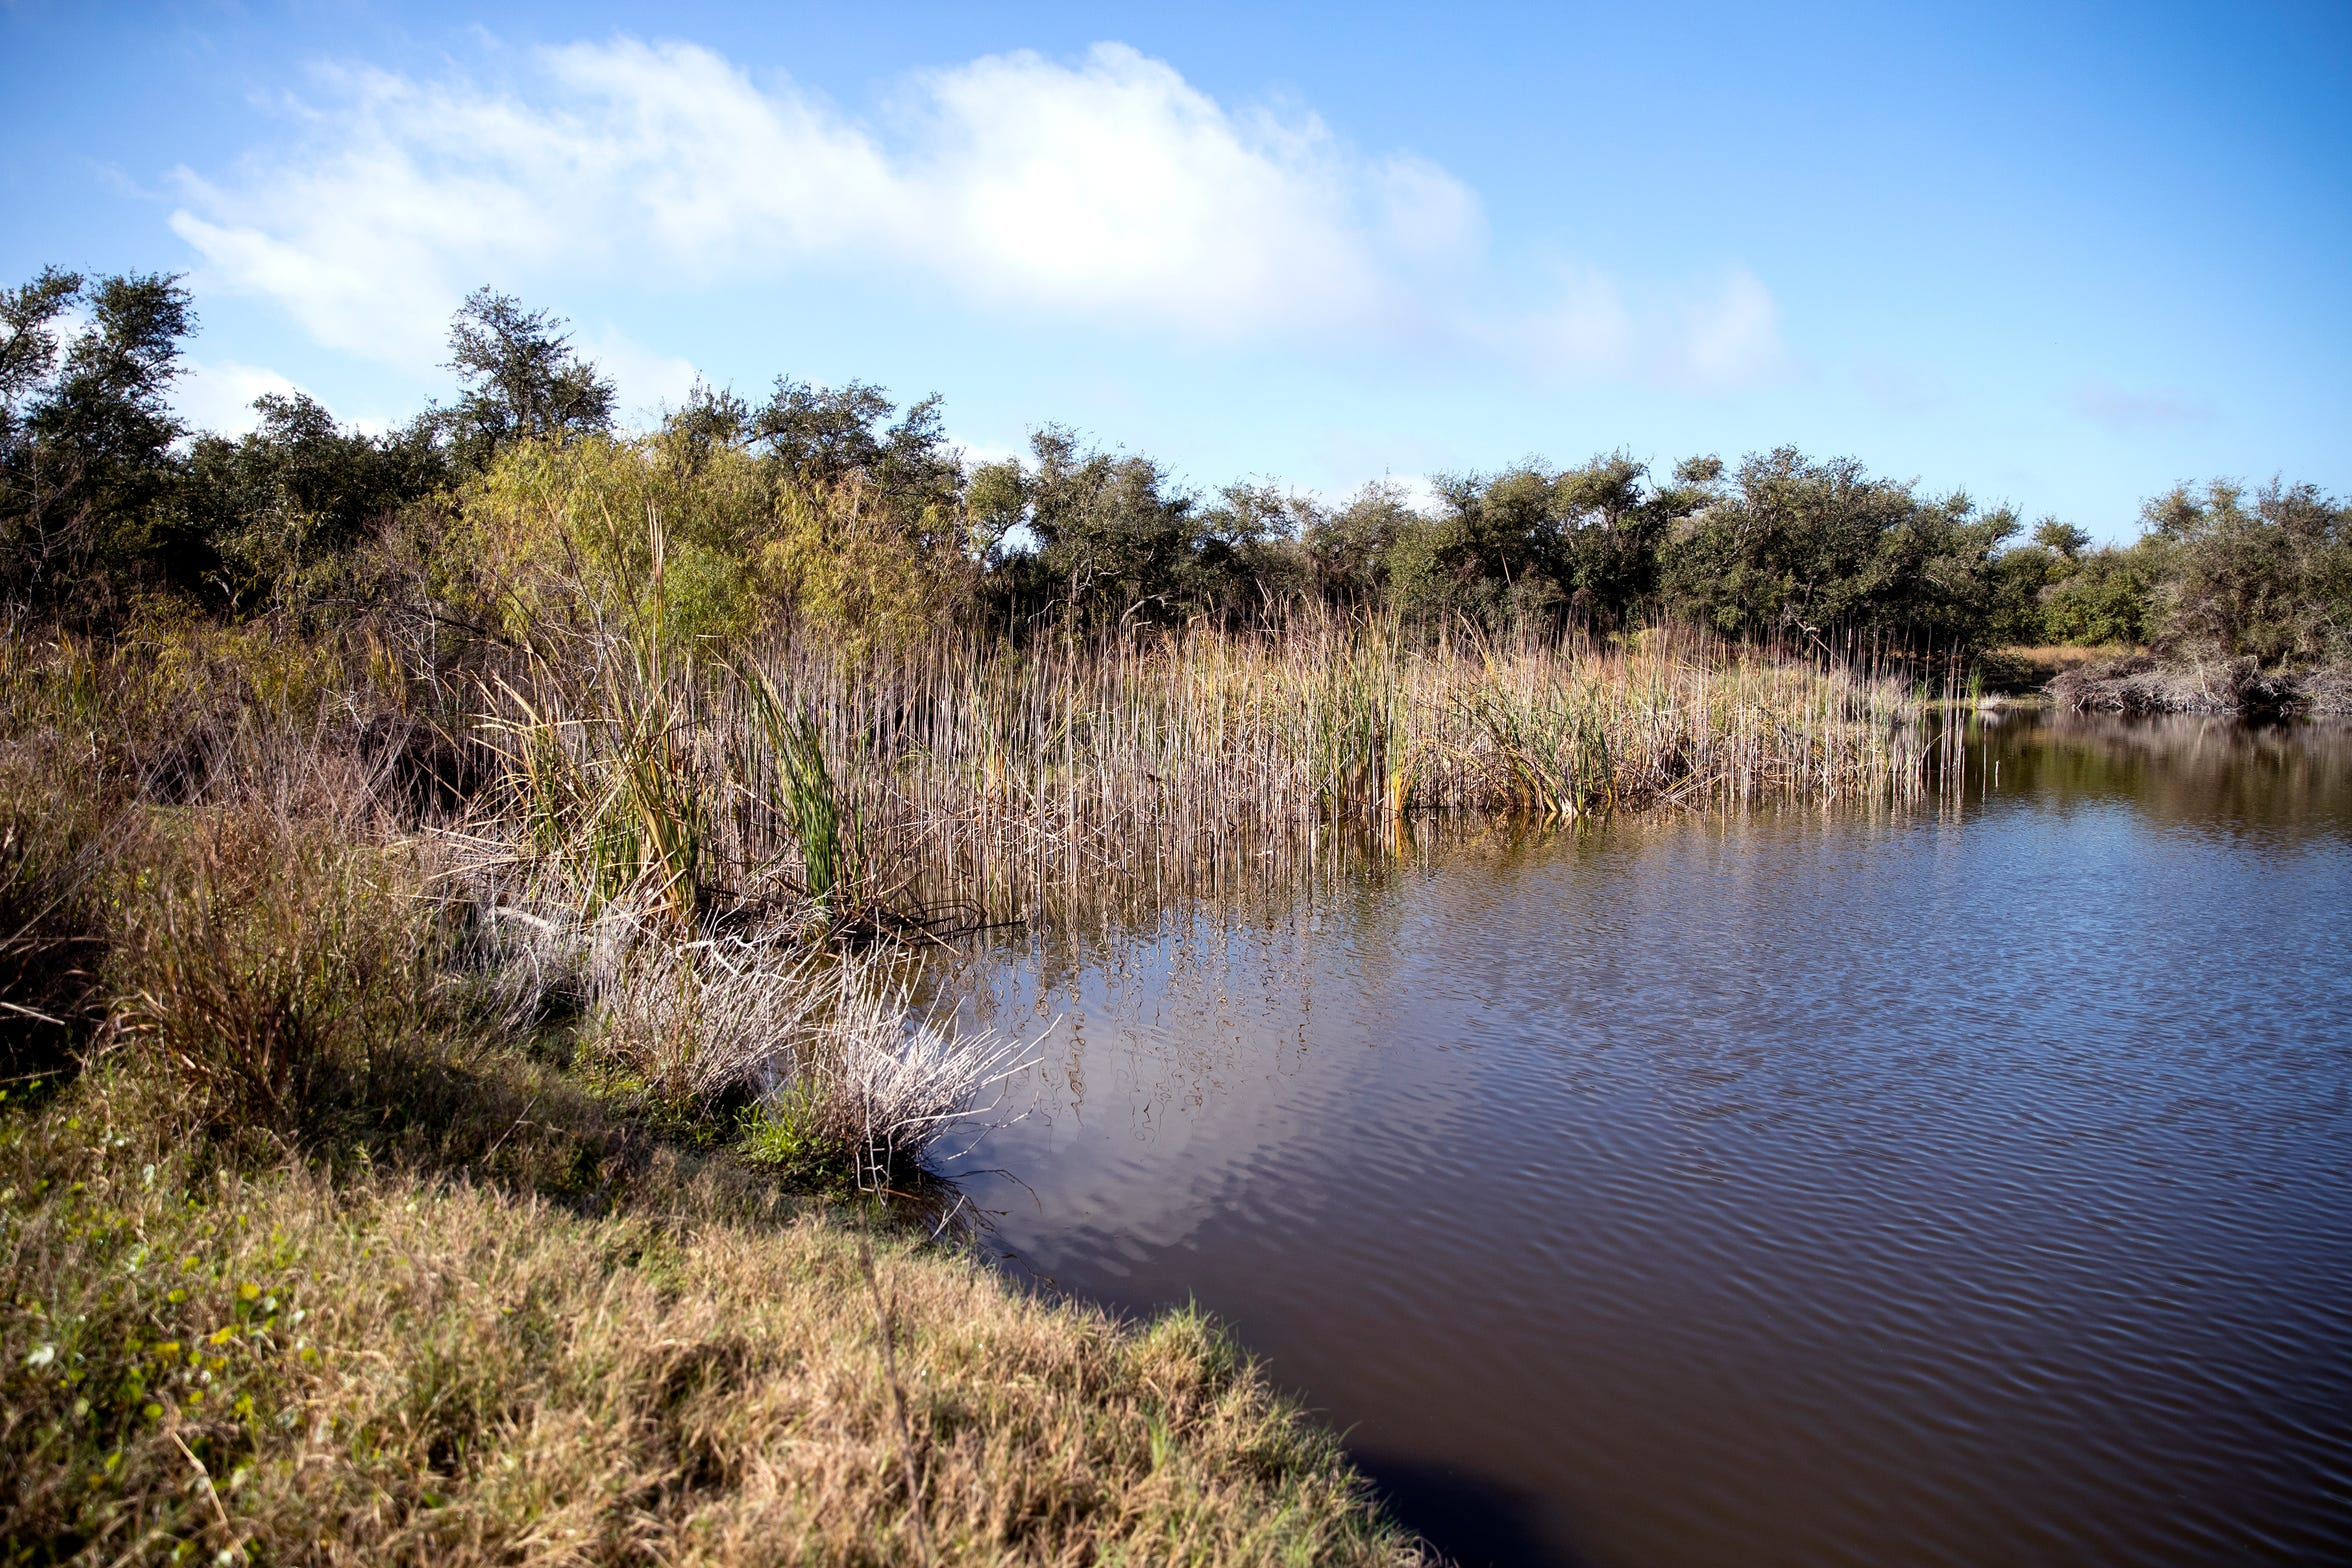 The Linda S. Castro Nature Sanctuary in Fulton is an Aransas Pathways site. It includes a live oak motte, a remnant of a coastal prairie and an ephemeral pond. An oak mottes is a valuable stopover habitat for migrating songbirds.